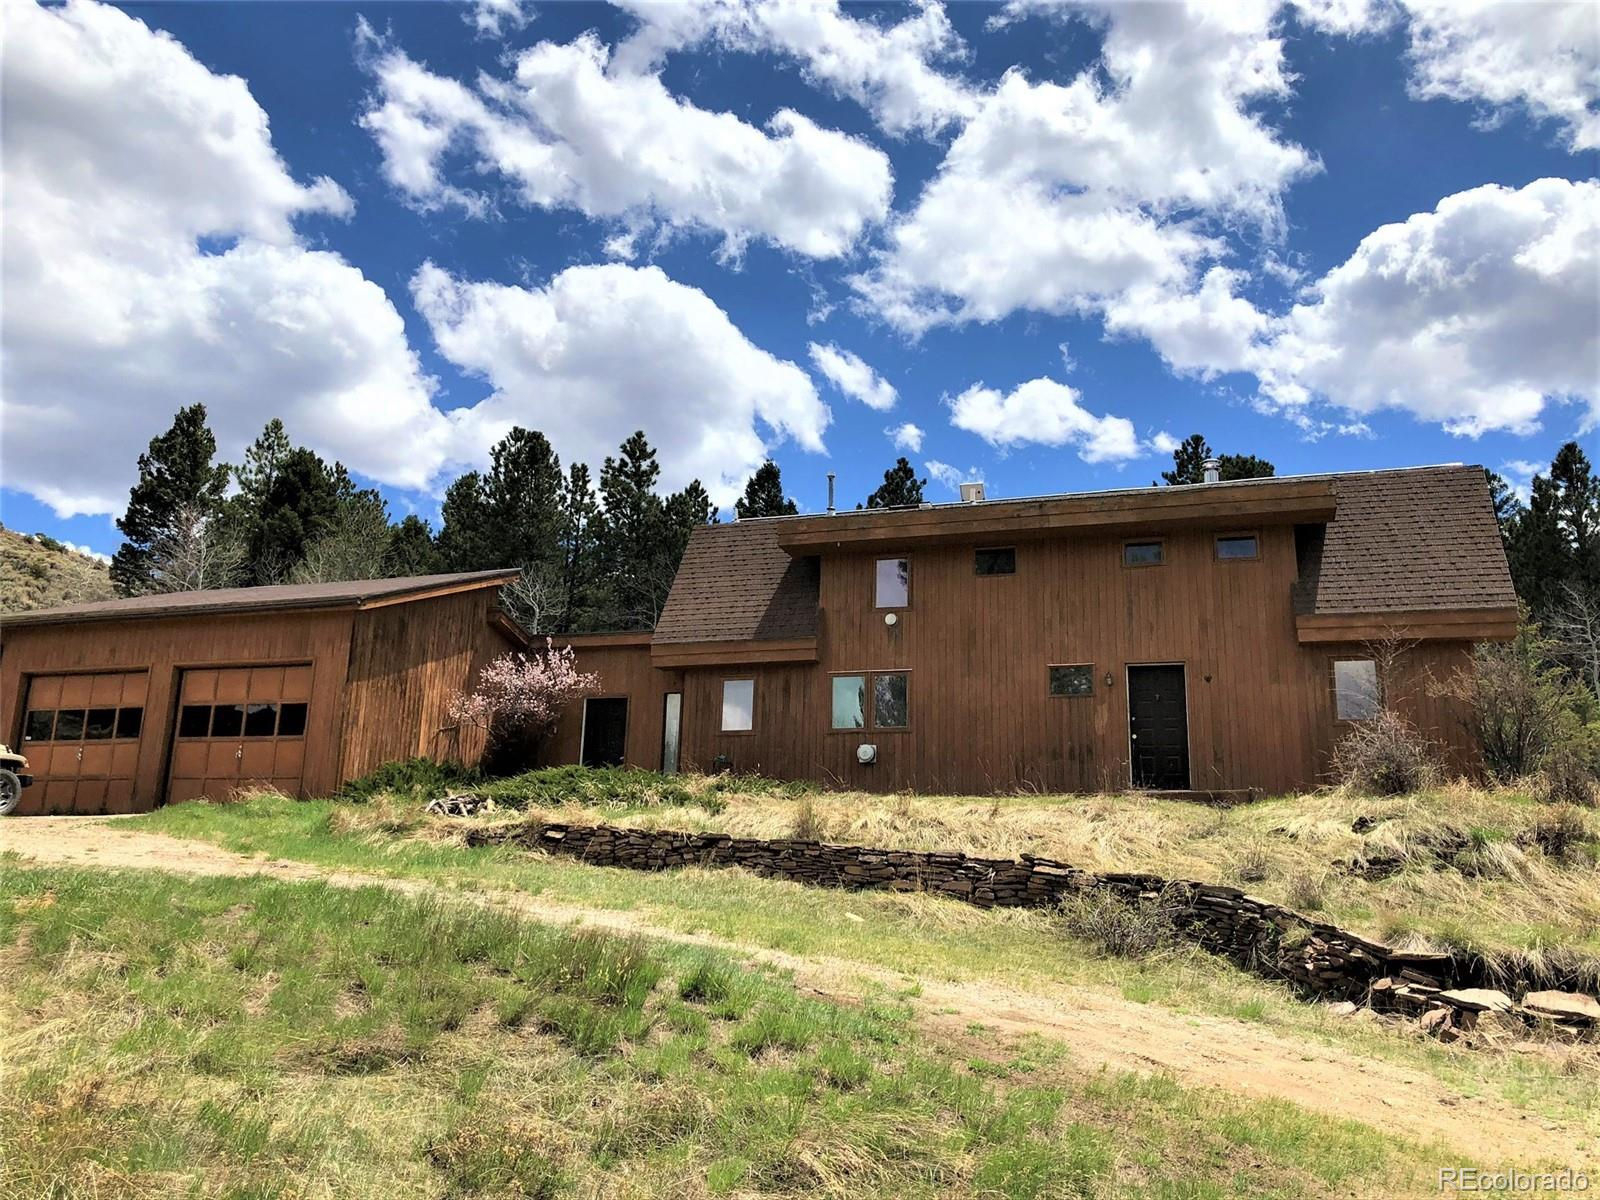 150 Schierl Road, Fort Garland, CO 81133 - Fort Garland, CO real estate listing